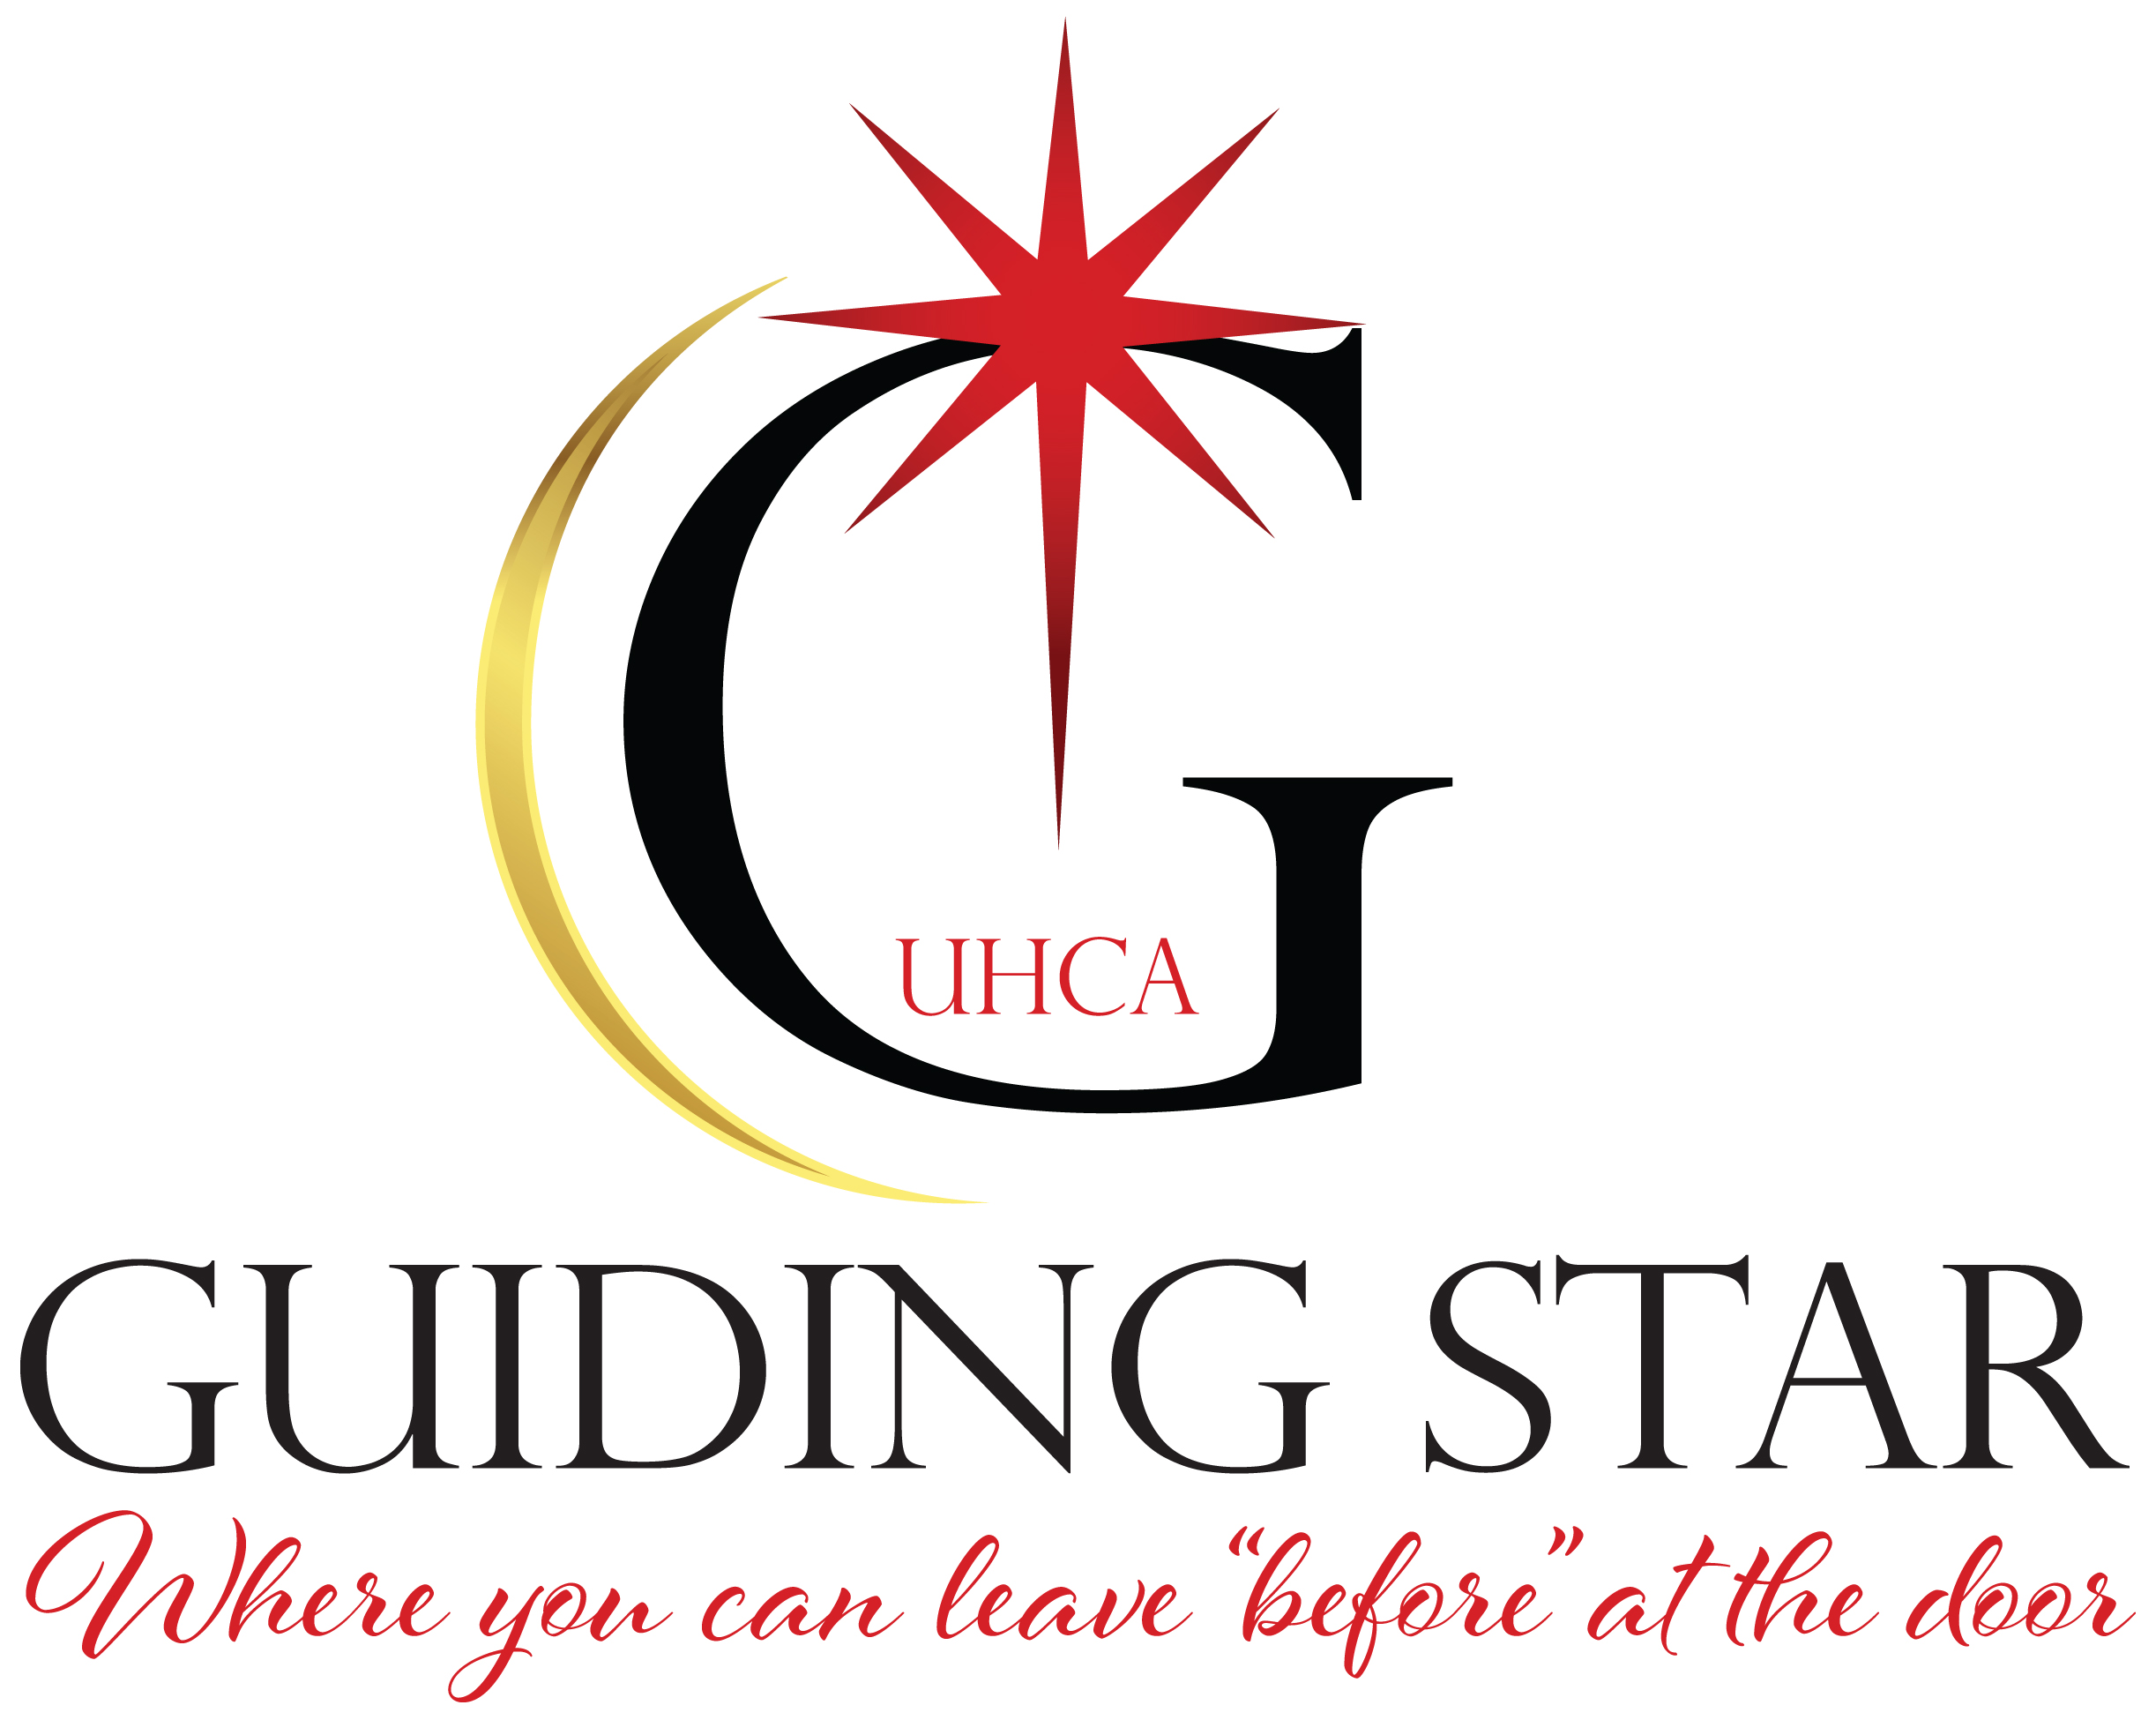 Guiding Star UHC Church Logo Design